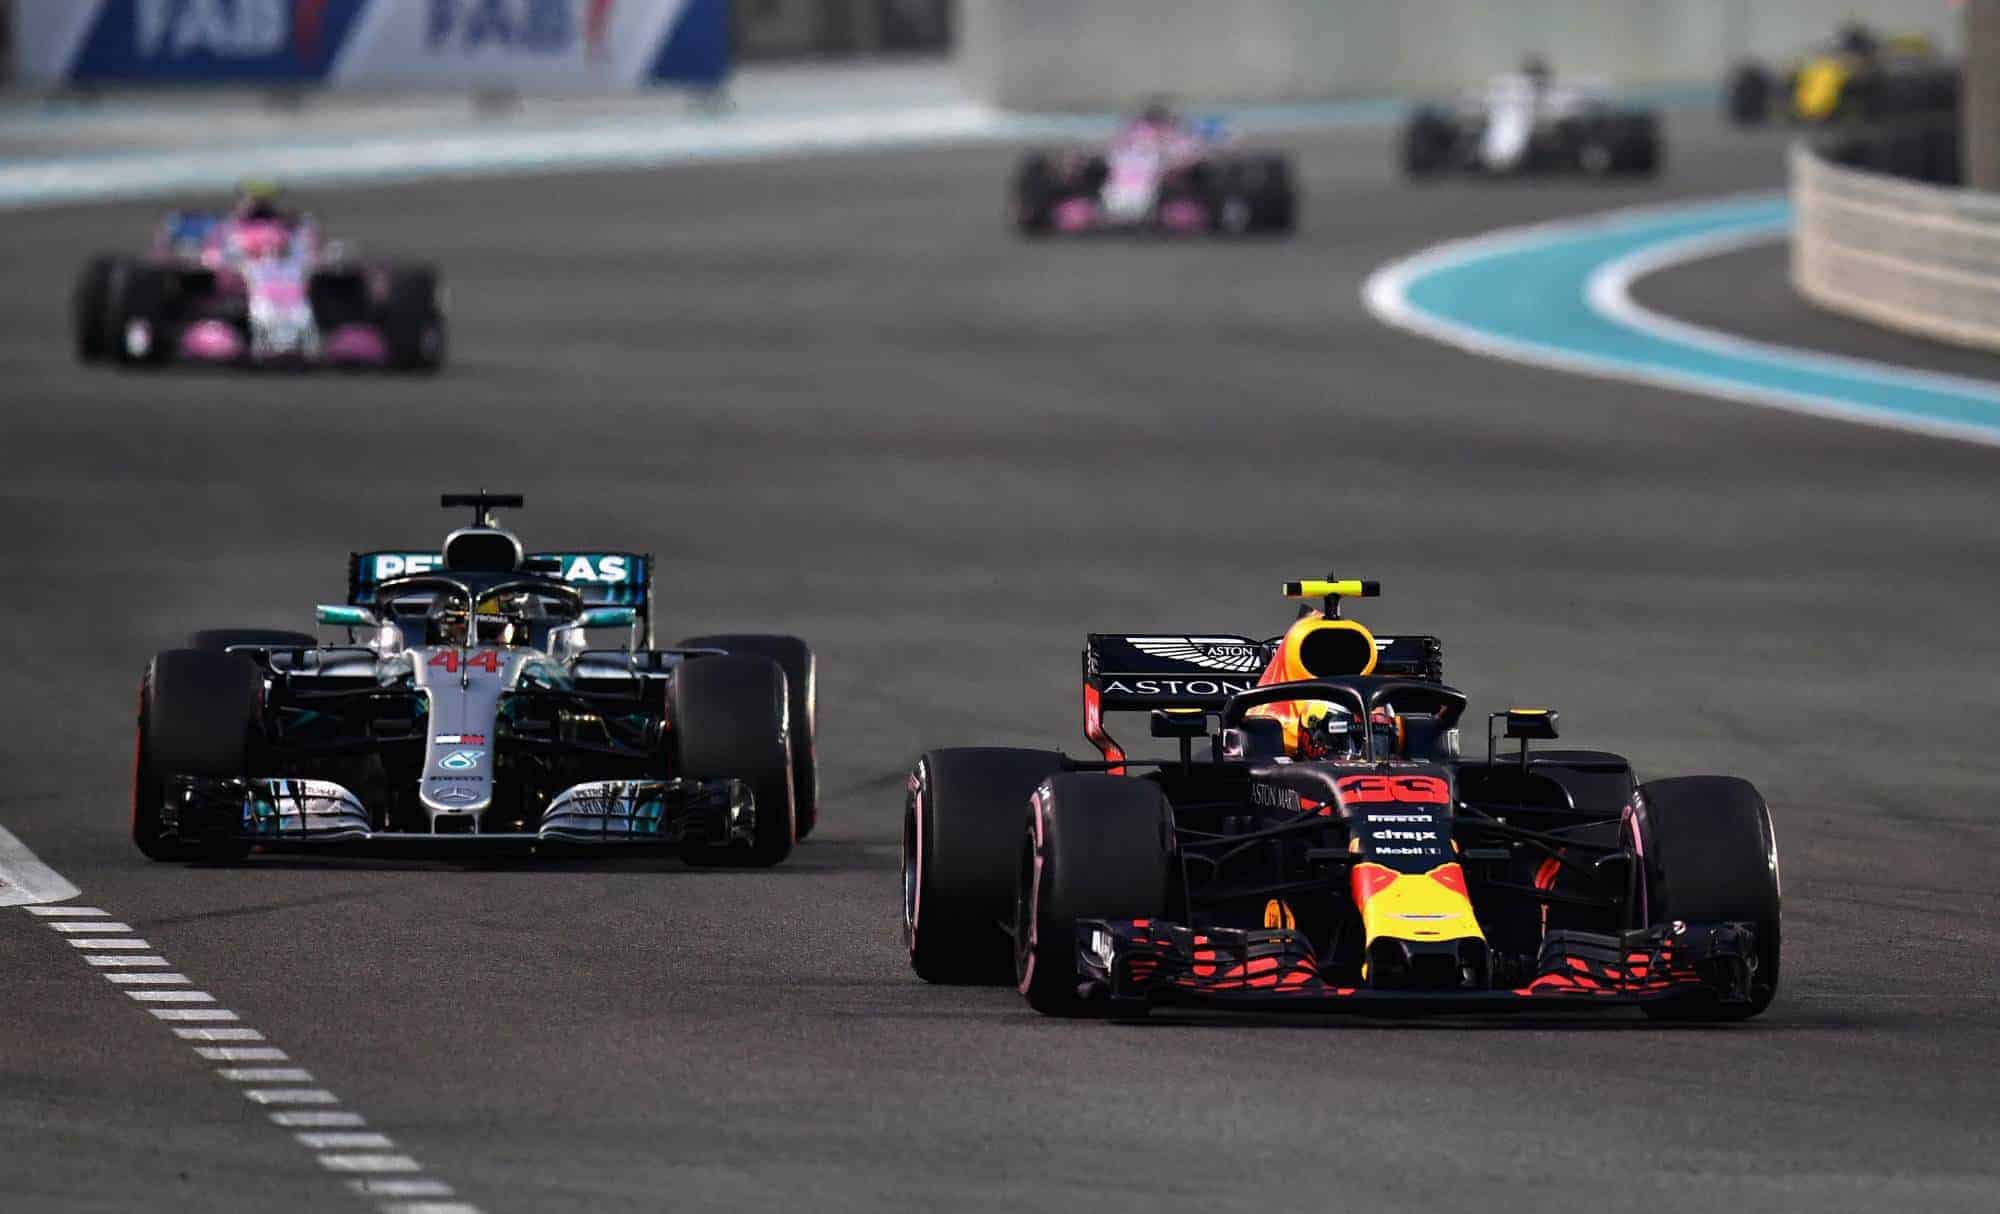 Verstappen leads Hamilton Abu Dhabi GP F1 2018 Photo Red Bull